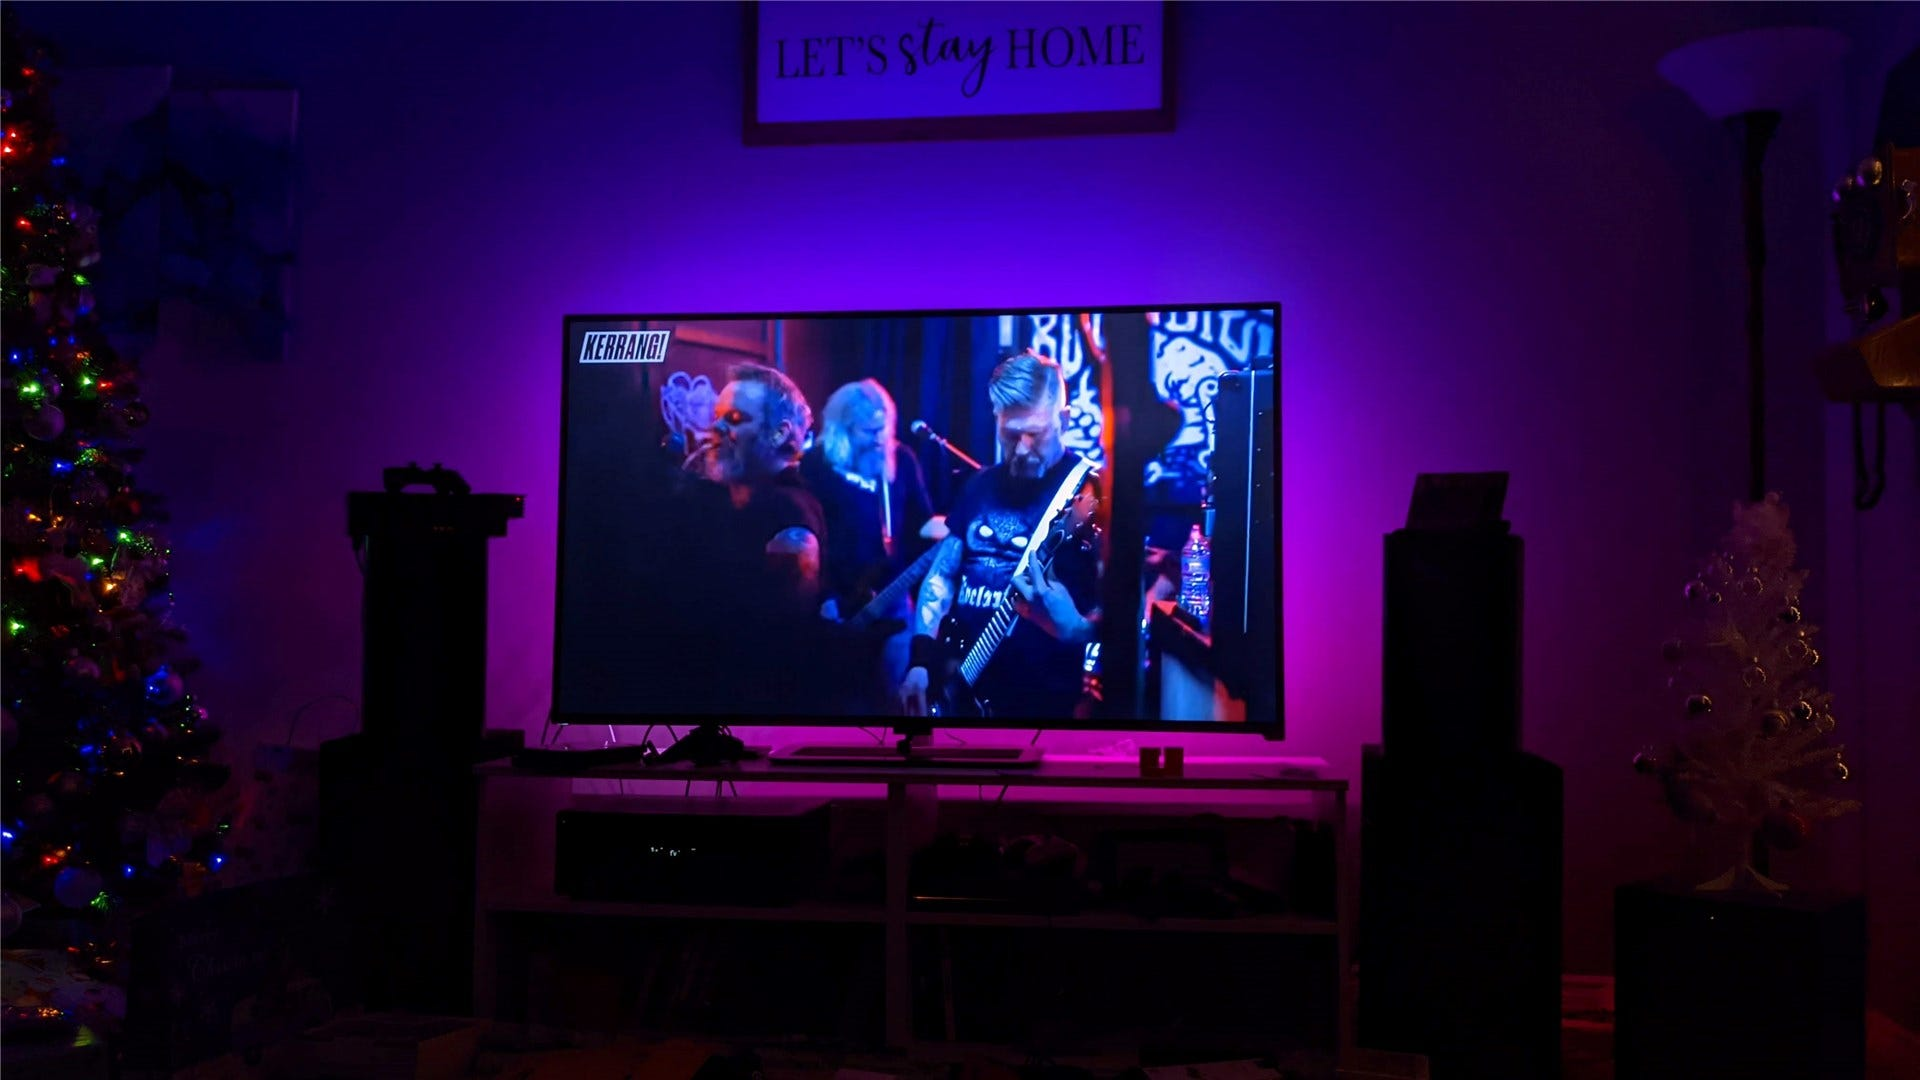 The Immersion glowing blue, purple, and pink behind a TV showing a live concert